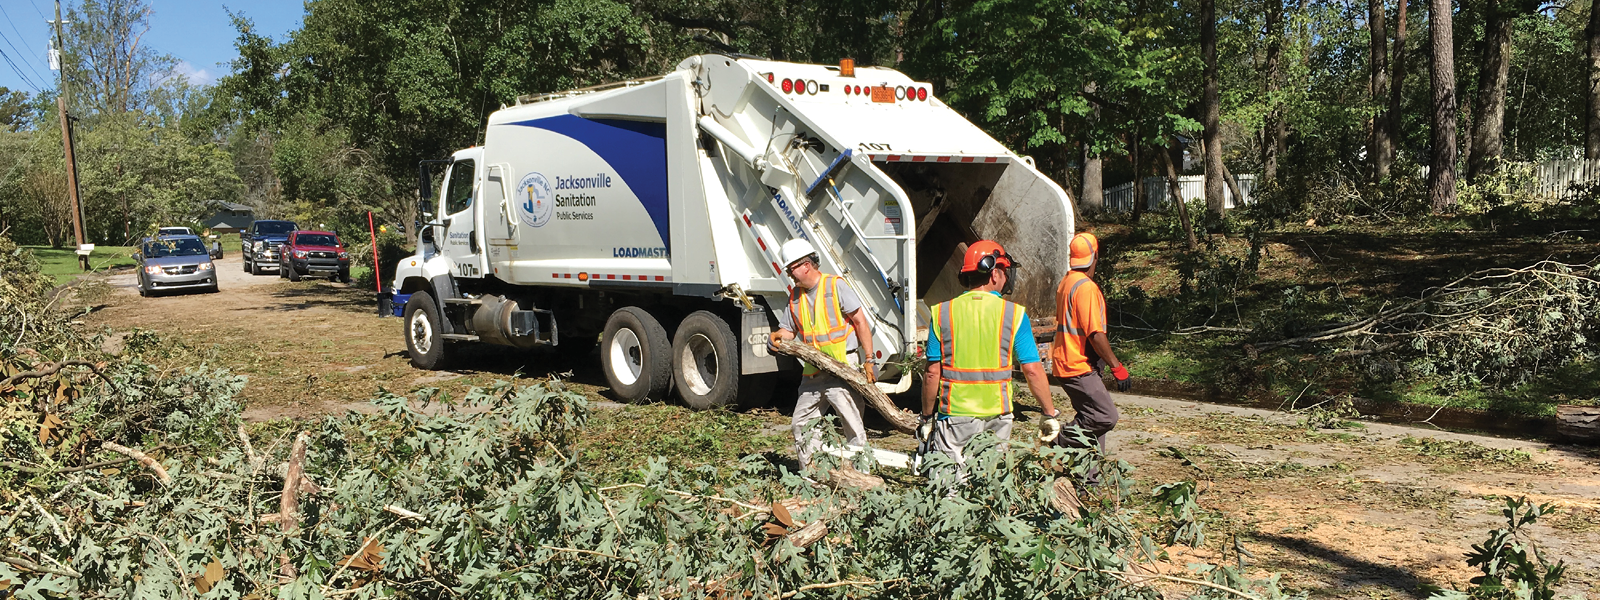 Debris and Sanitation Collection Information